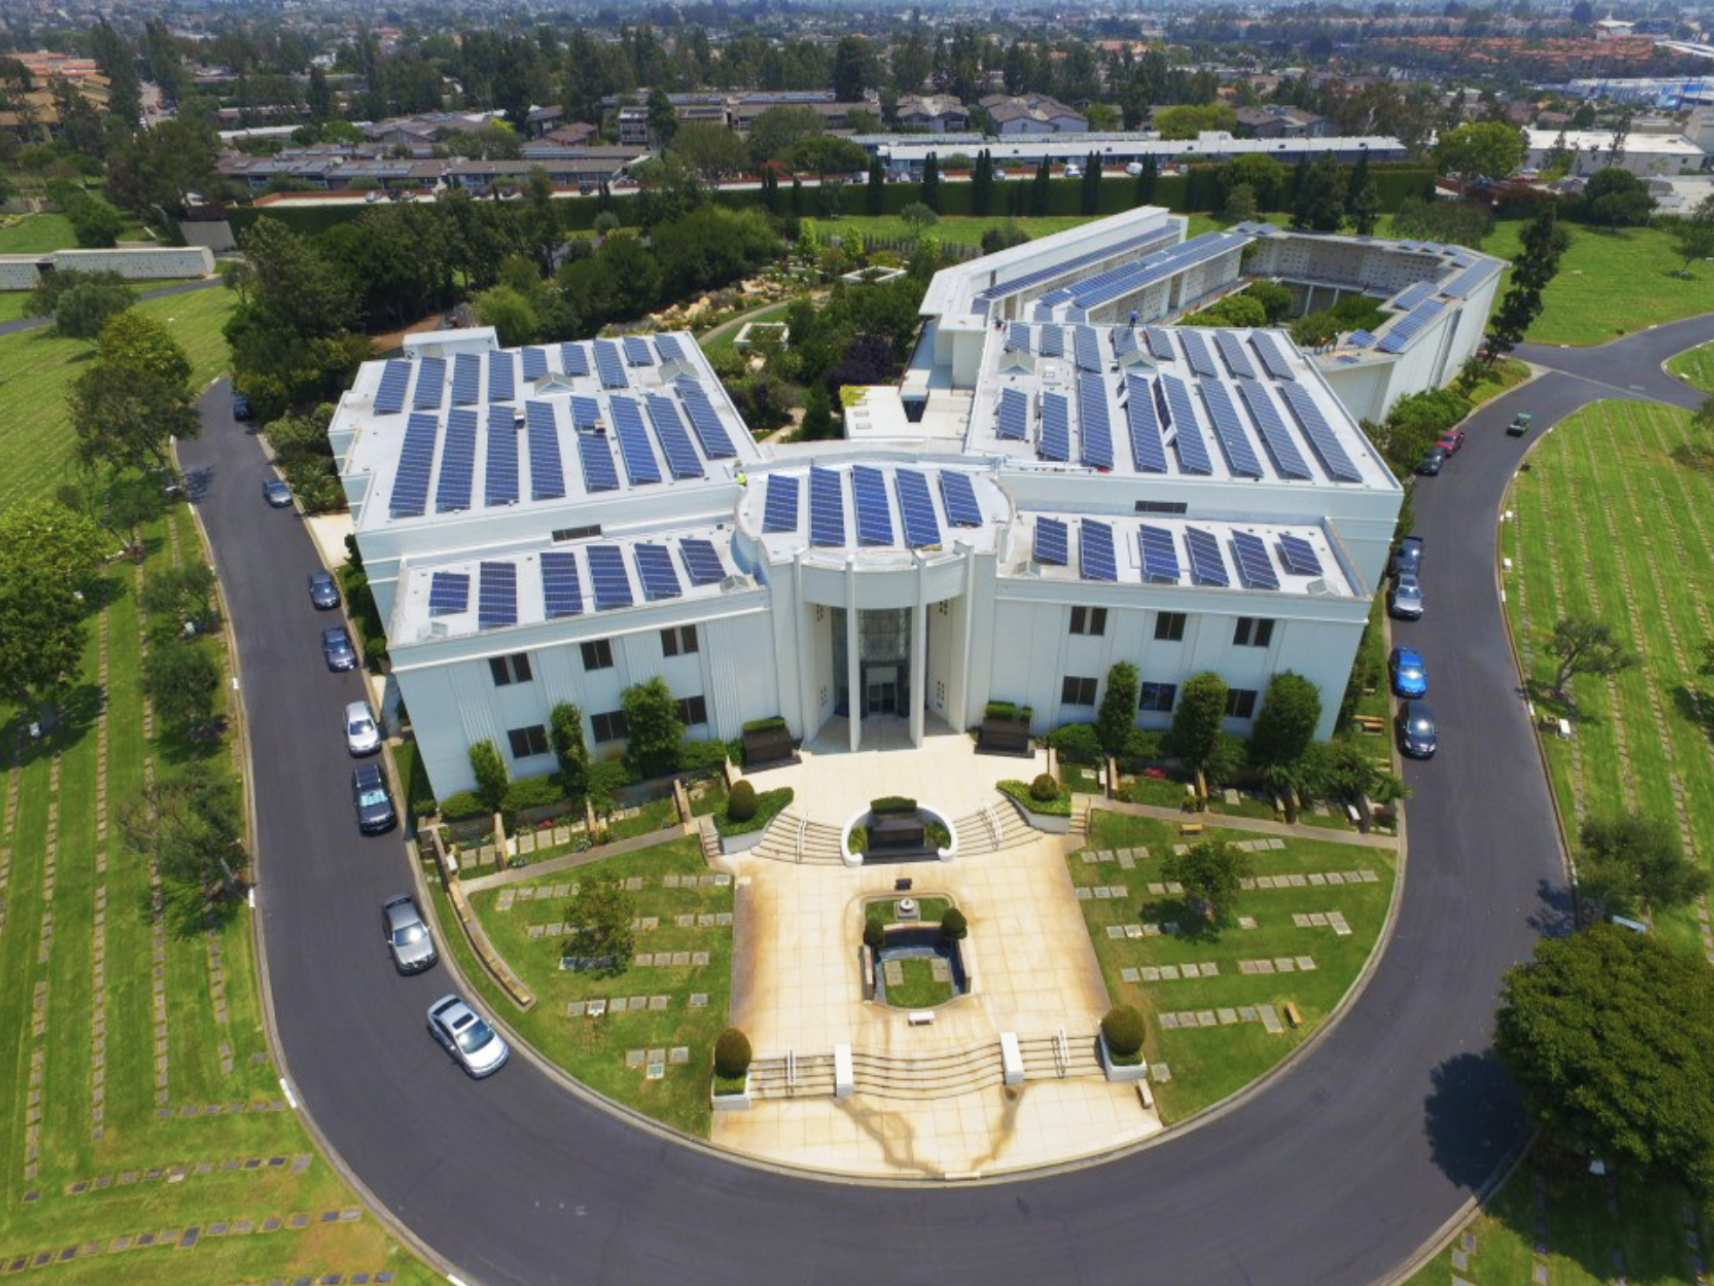 Renewable Power &Energy Storage - We offer renewable power, energy management, and energy storage solutions for commercial, faith-based, and nonprofit organizations throughout Southern California.